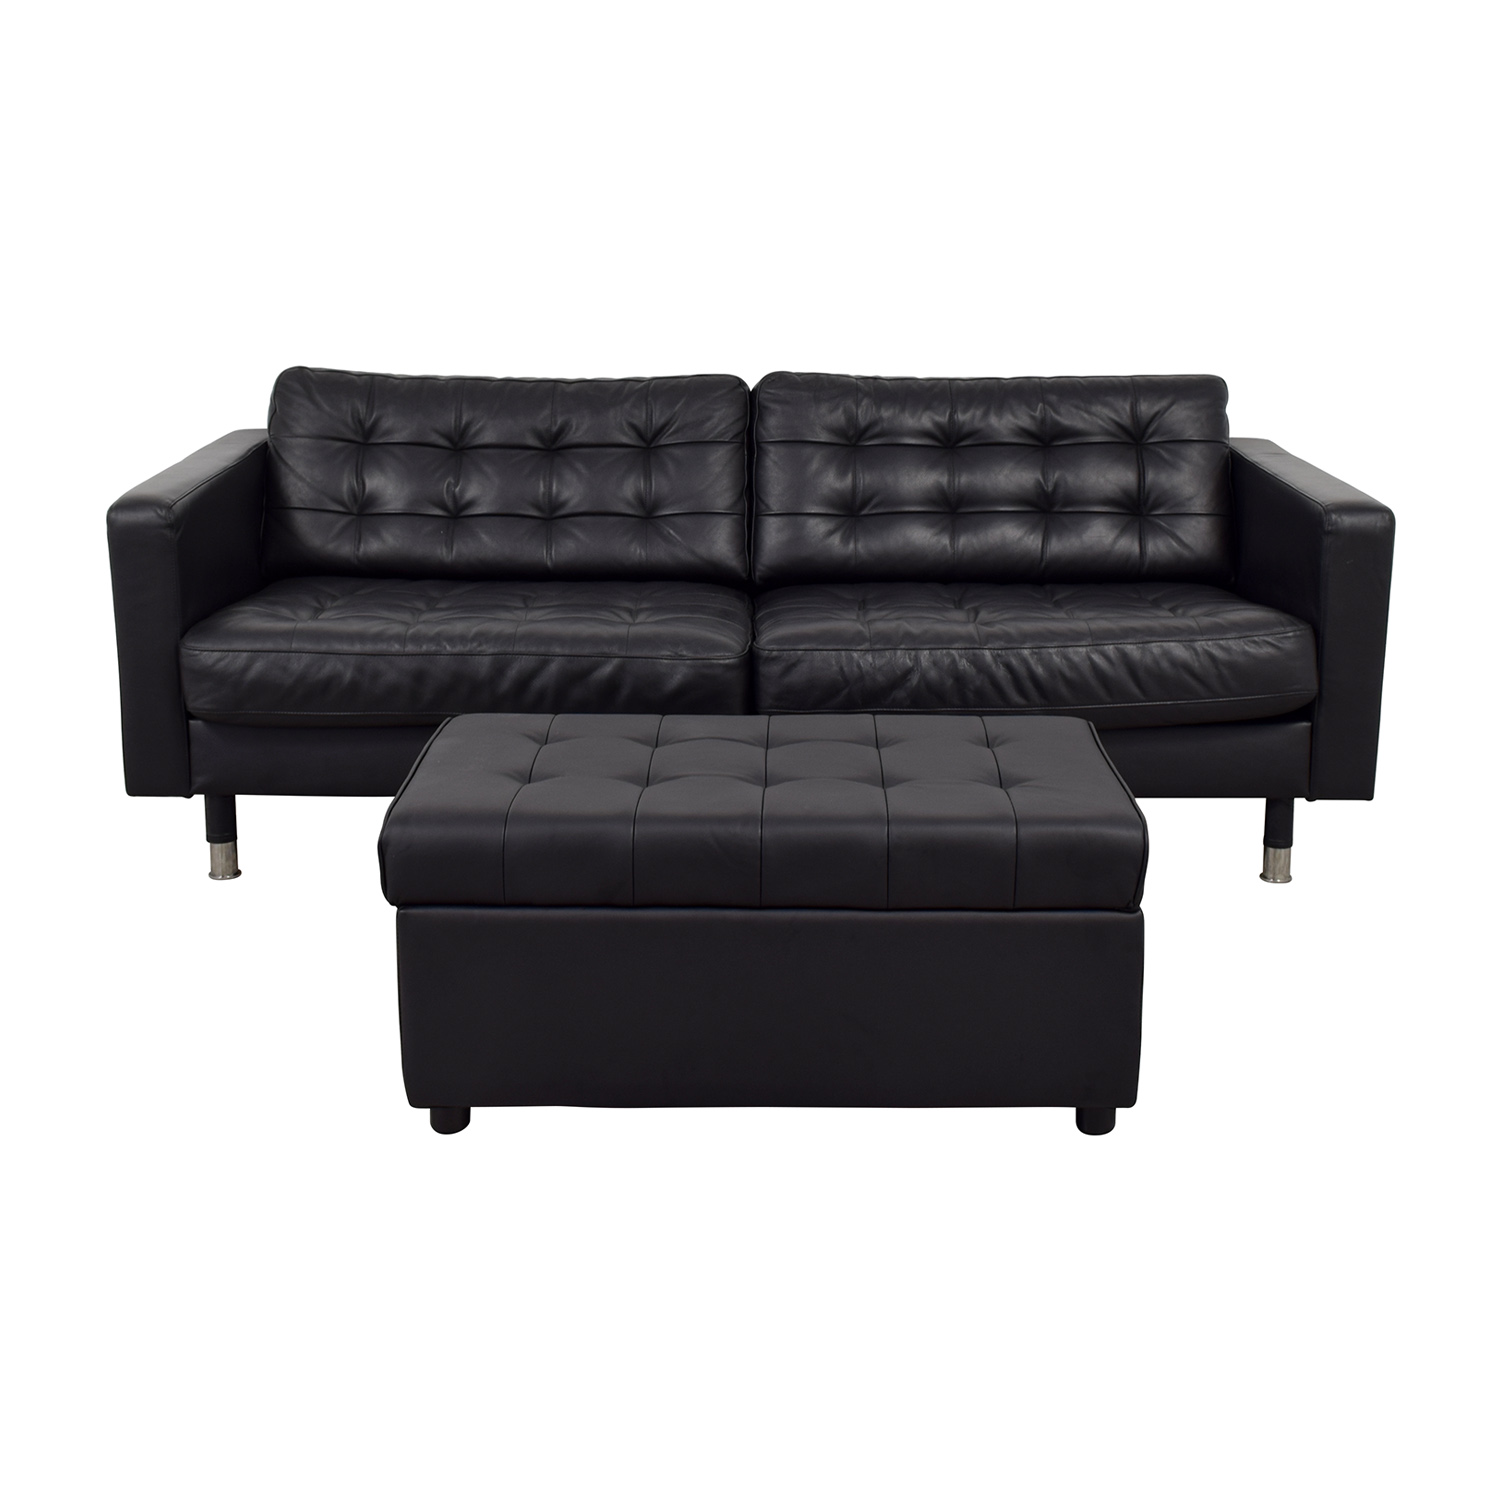 Loveseat Ikea 36 Off Ikea Ikea Black Tufted Loveseat And Ottoman With Storage Sofas